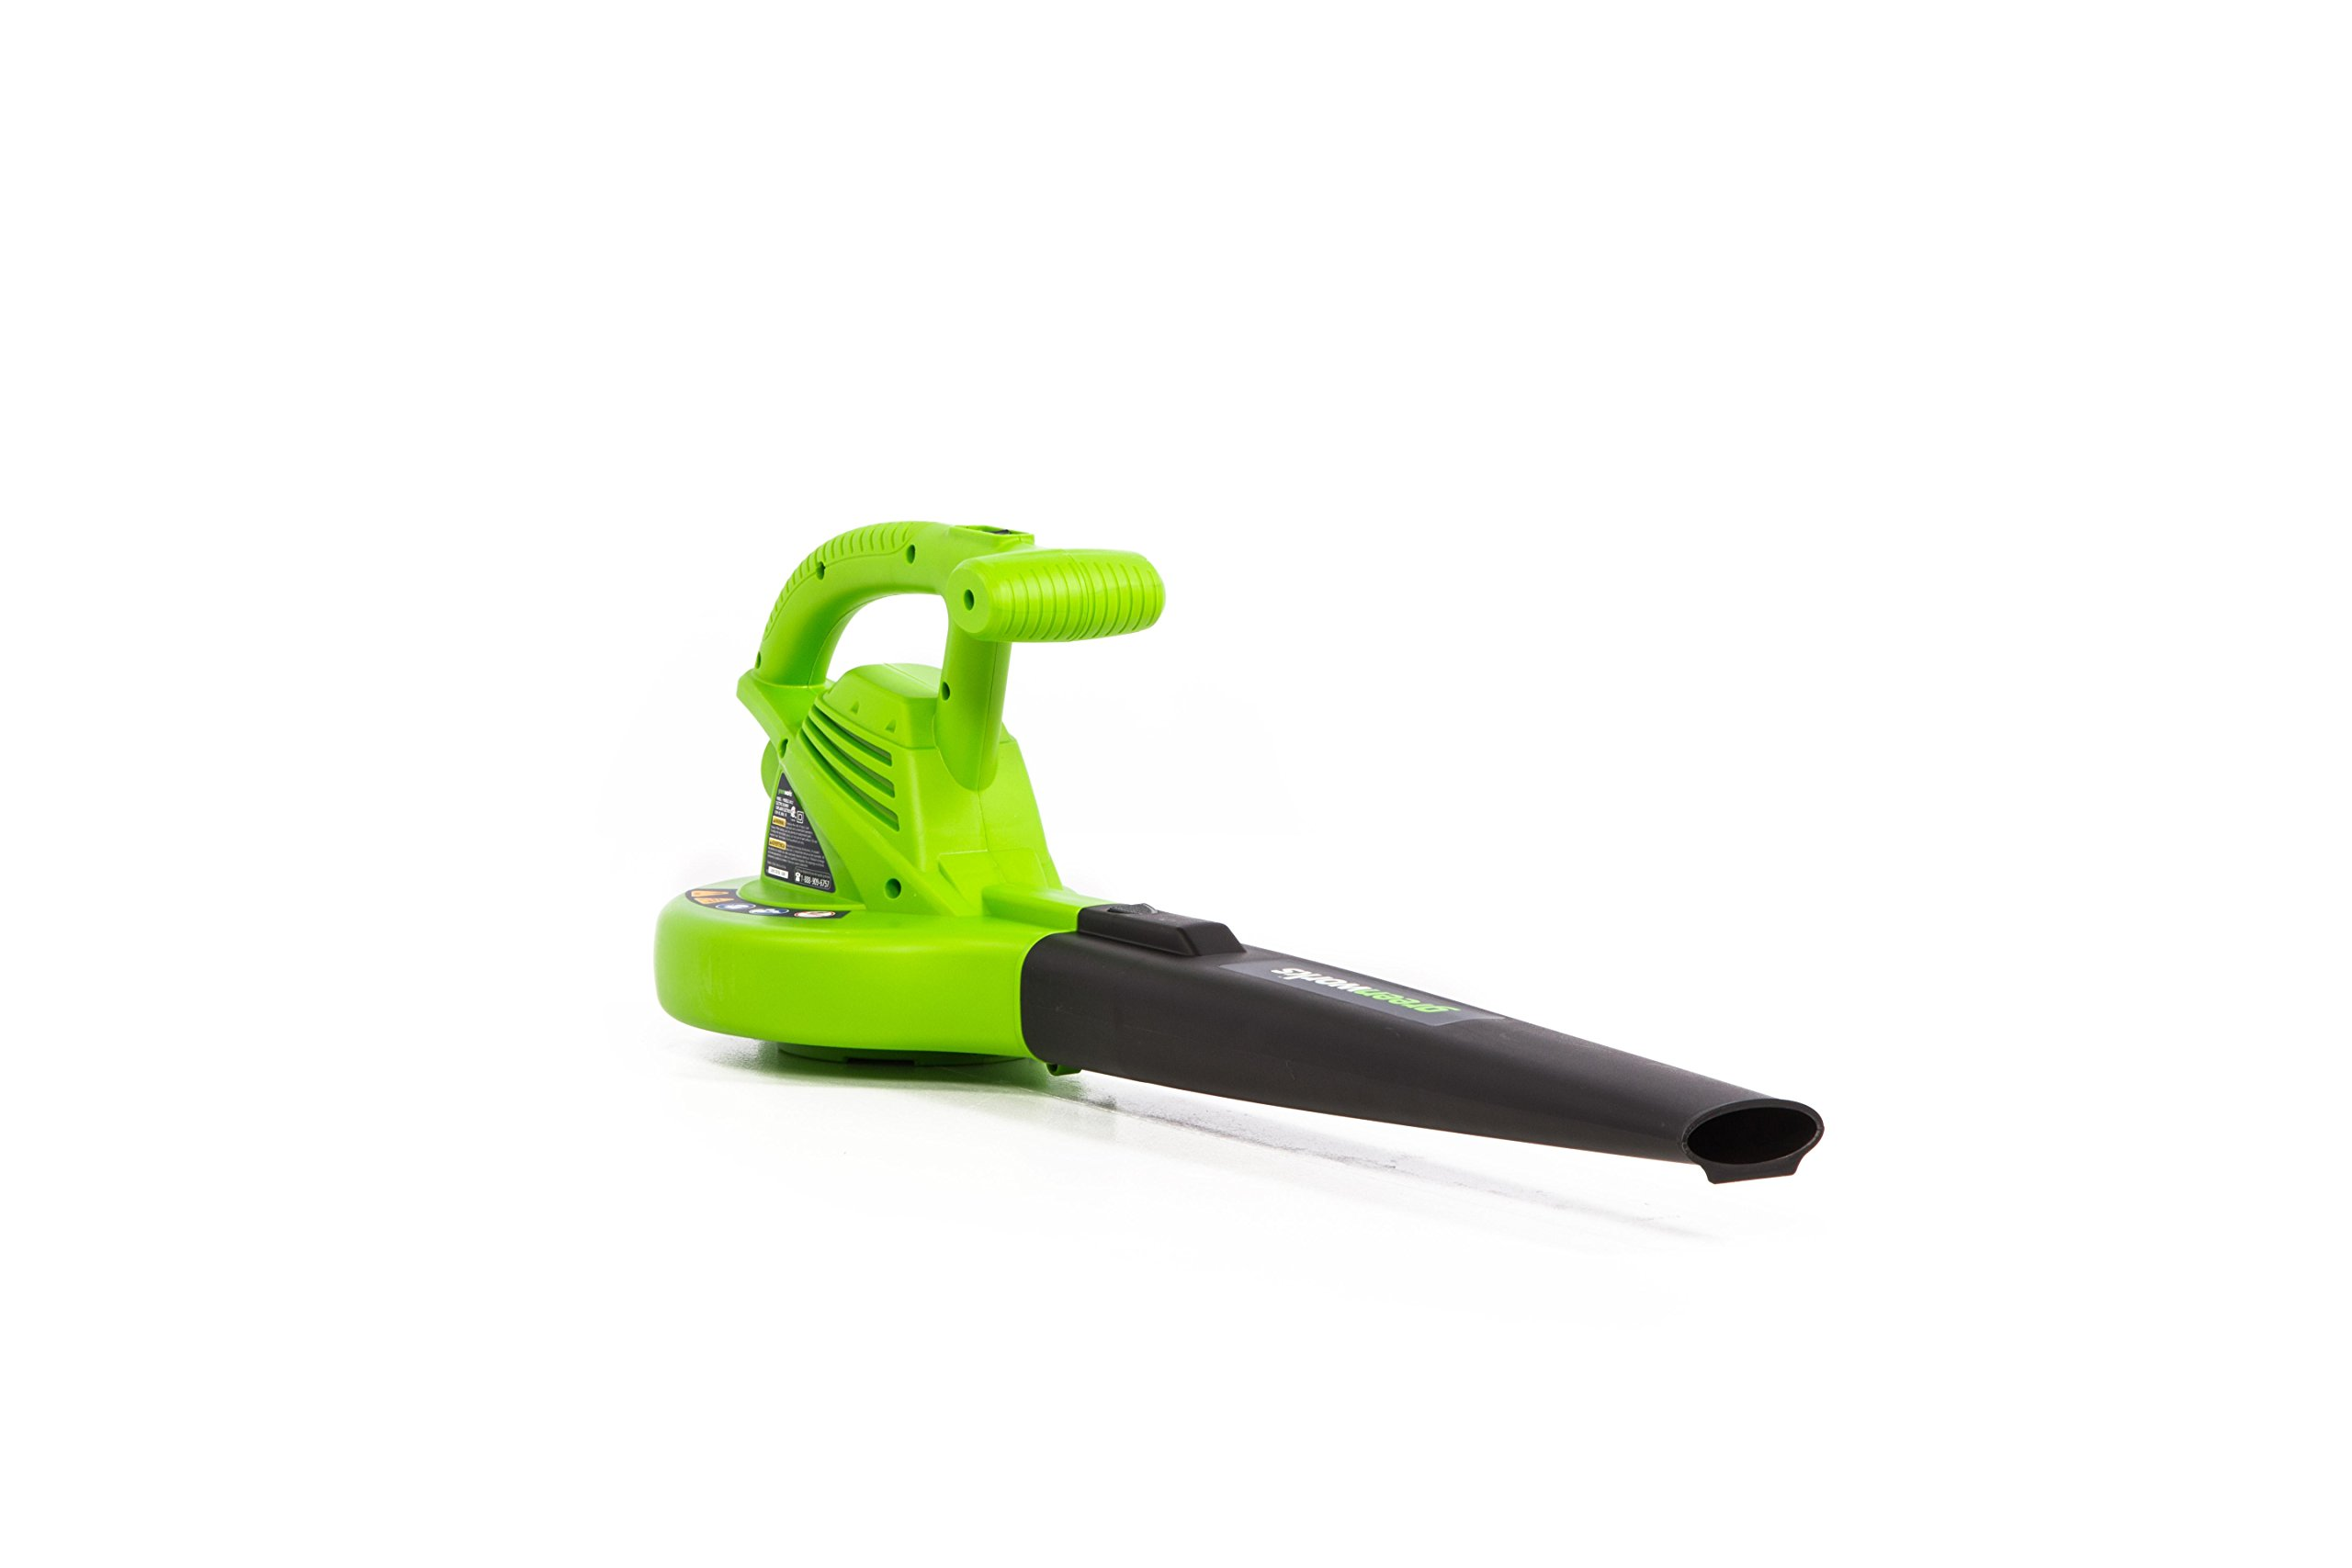 Greenworks 24012 7 Amp Single Speed Electric 160 MPH Blower by Greenworks